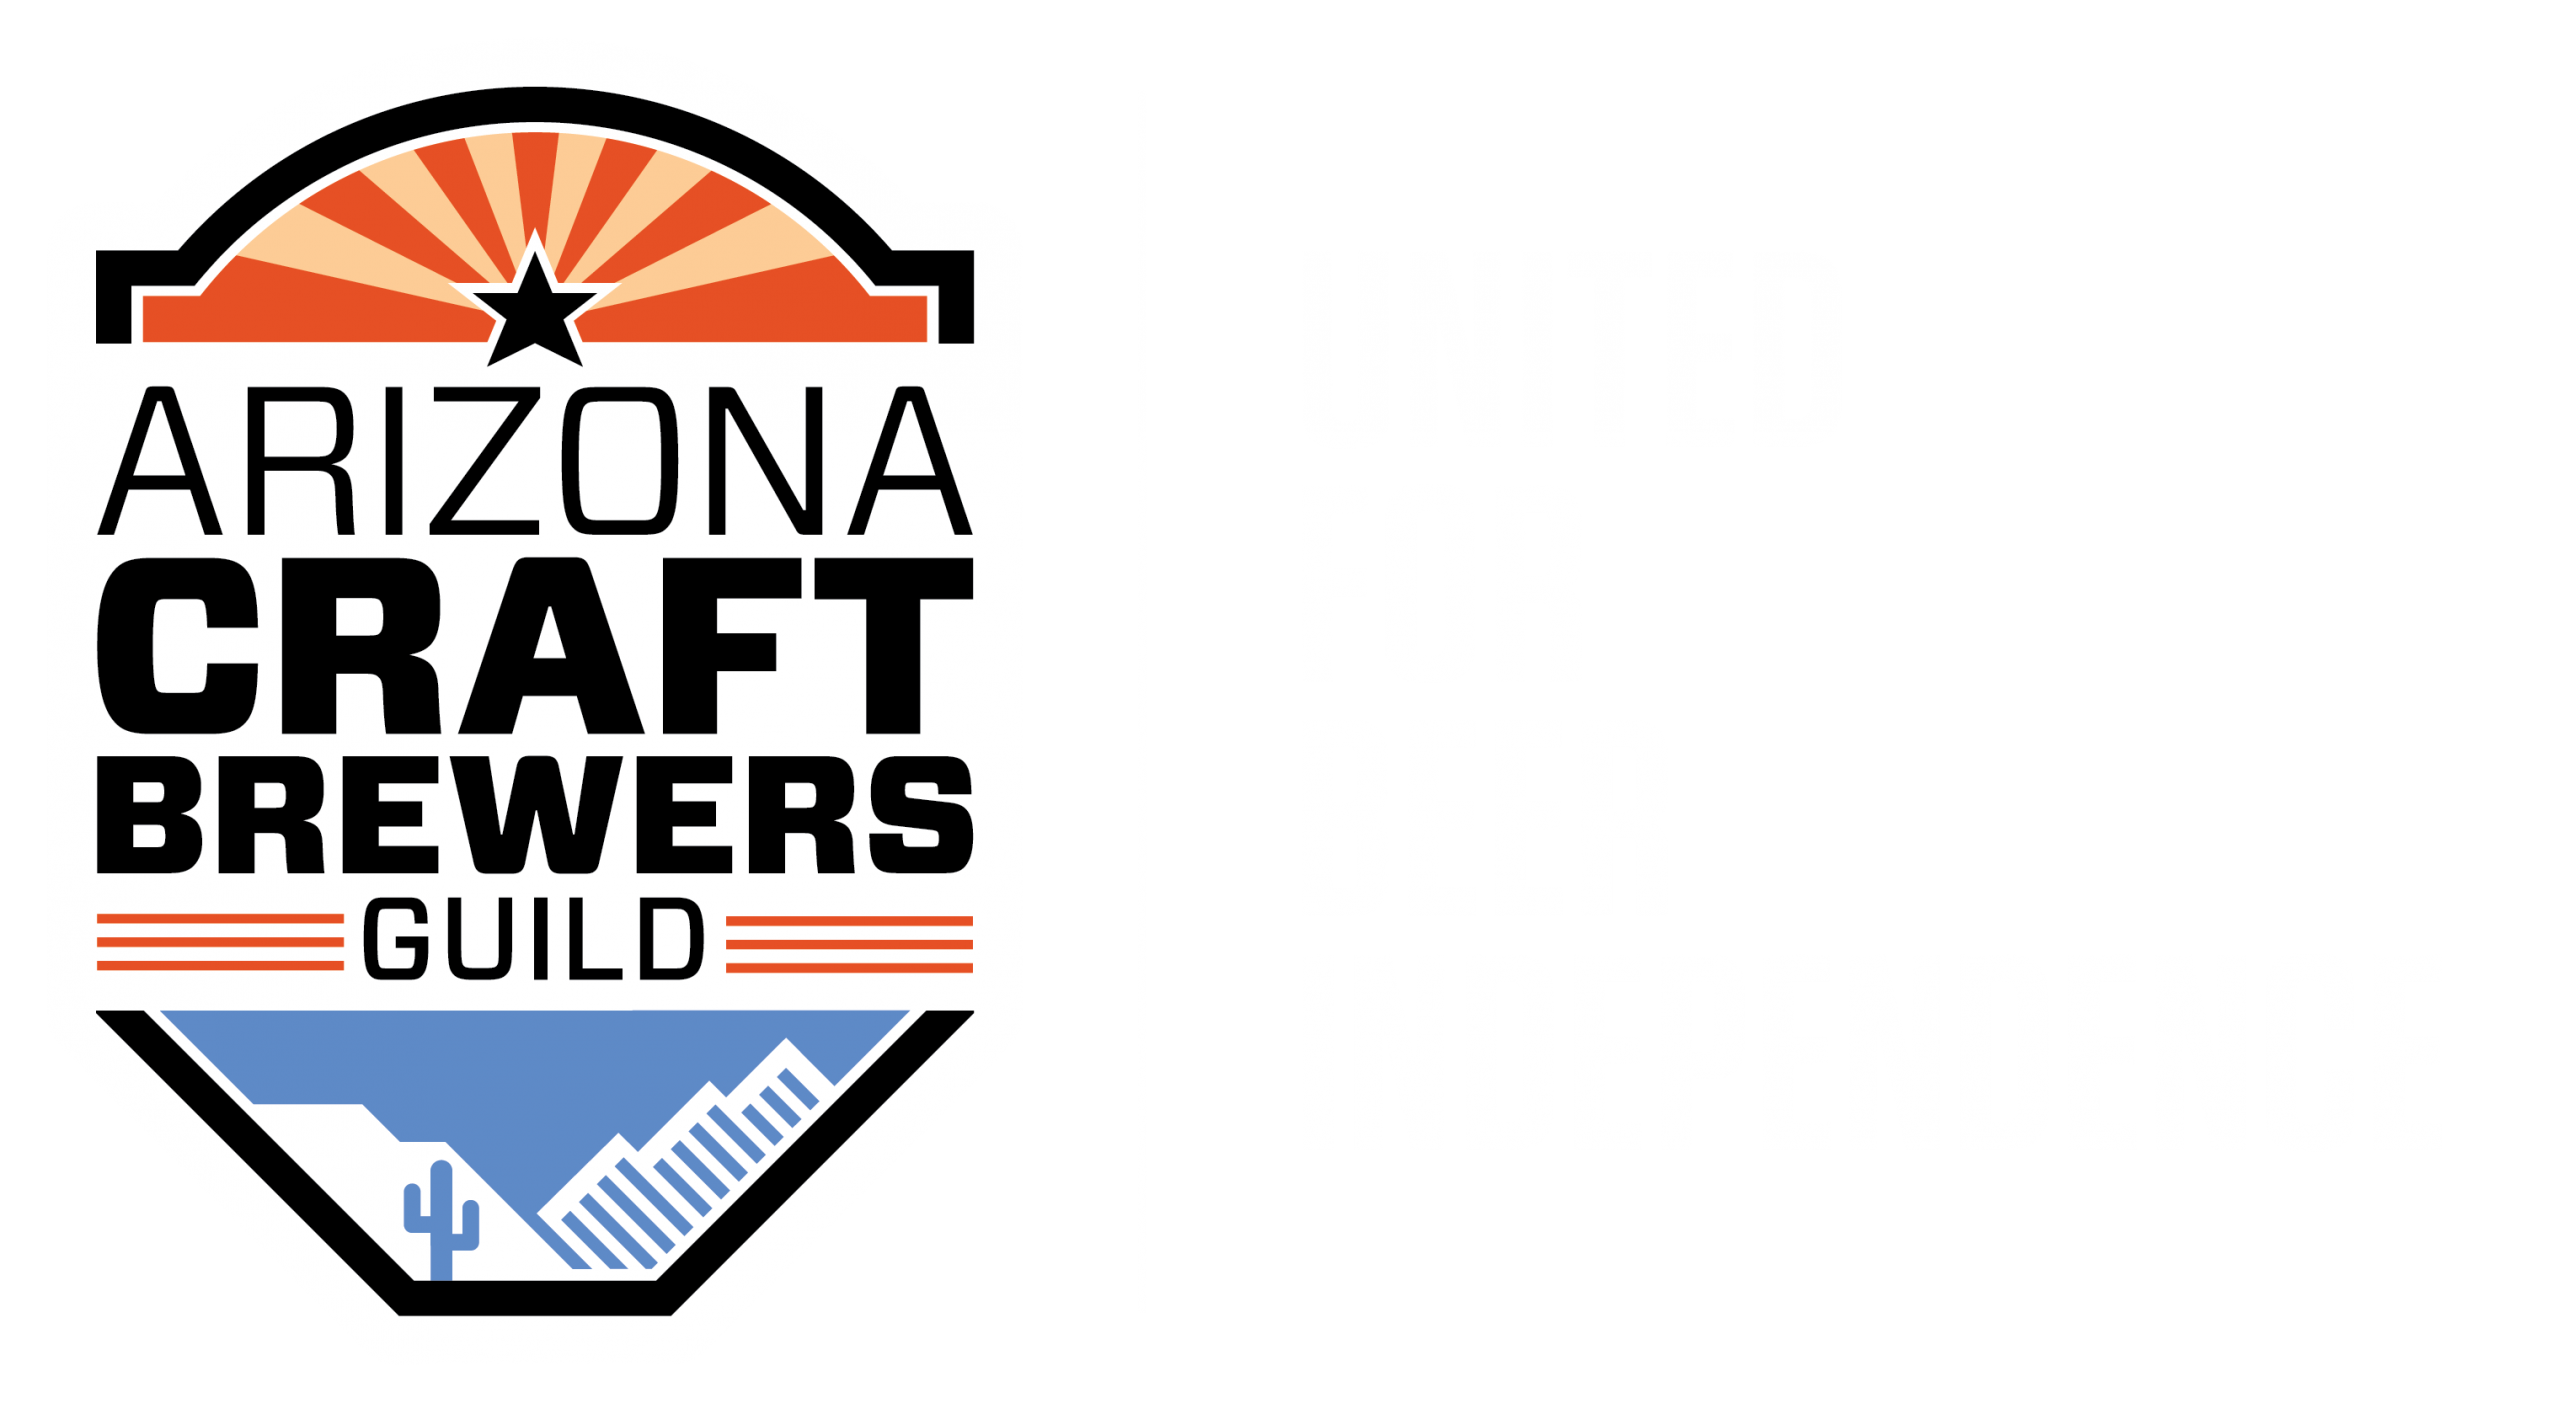 8 CAN'T MISS ARIZONA BEER WEEK EVENTS IN THE PHOENIX METRO AREA | Arizona Craft Brewers Guild